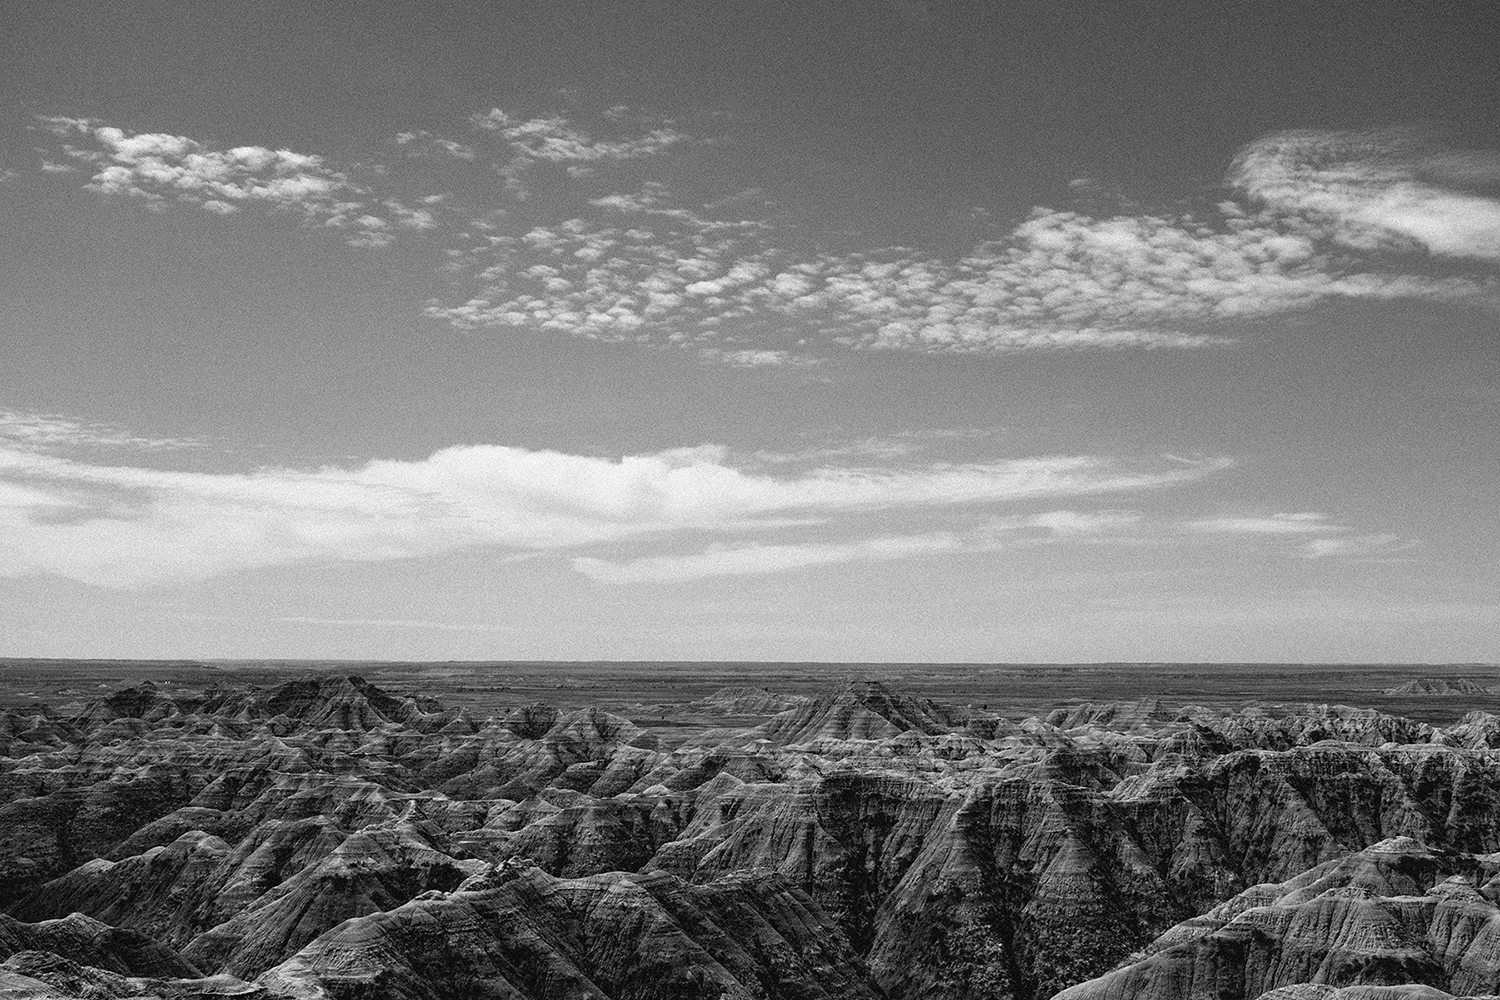 Arid land and a topography one associates more with the American Southwest